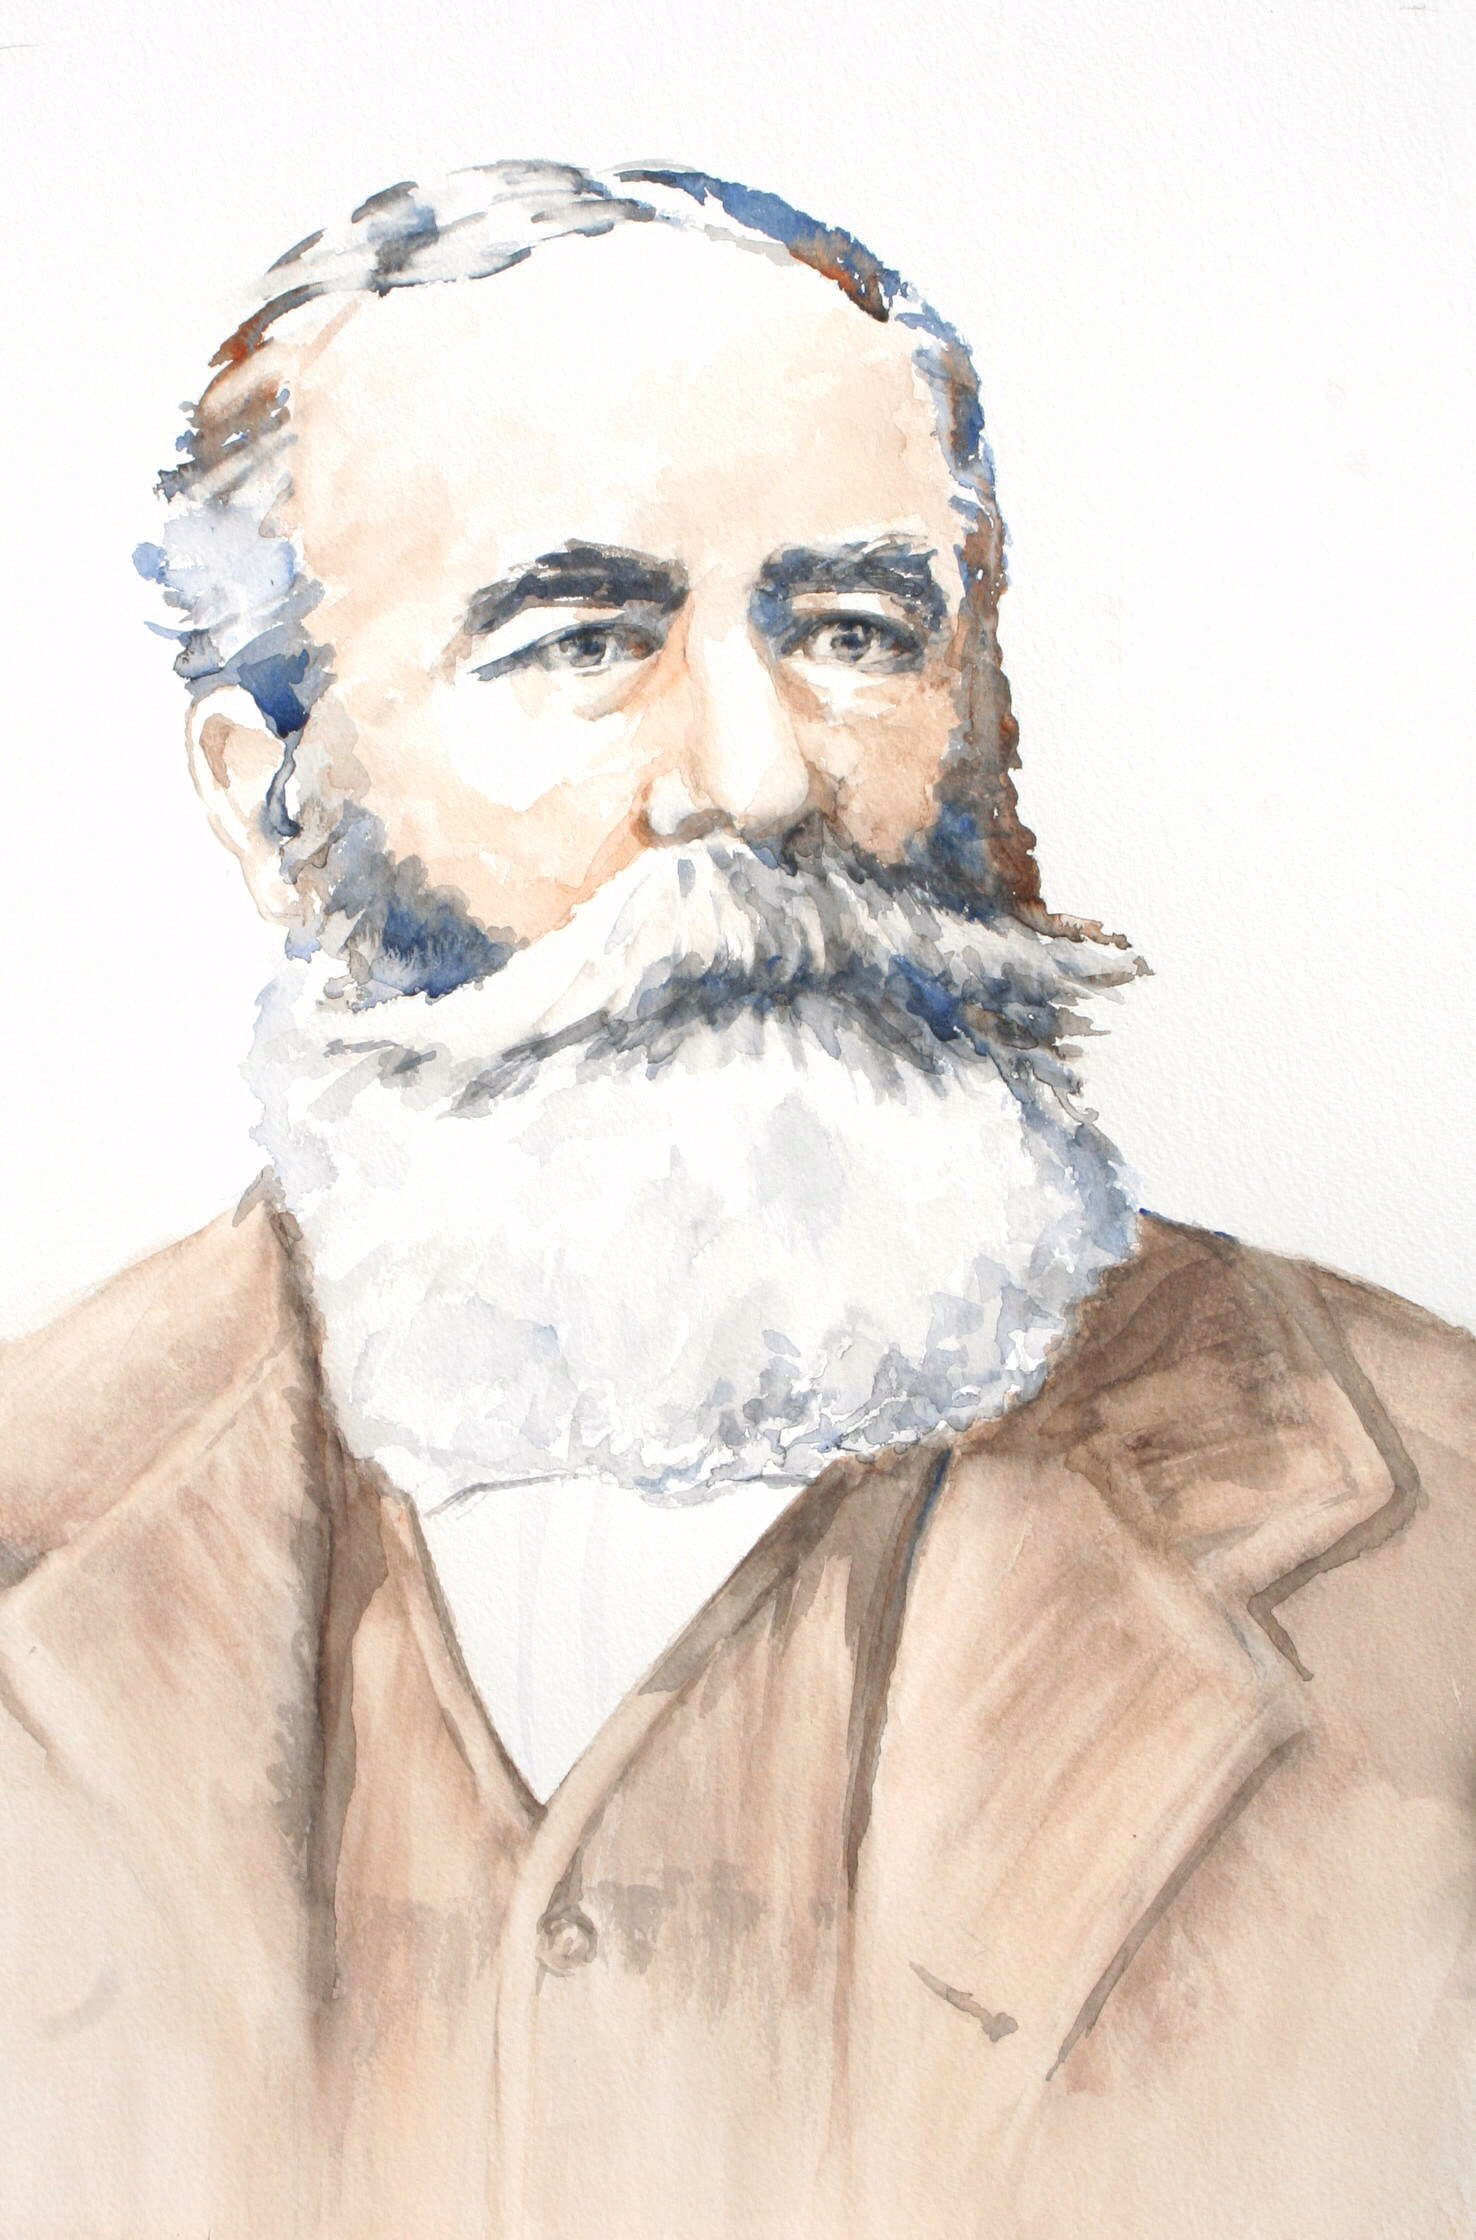 Marcus Horatio Bland - Watercolour (33cmx55cm)